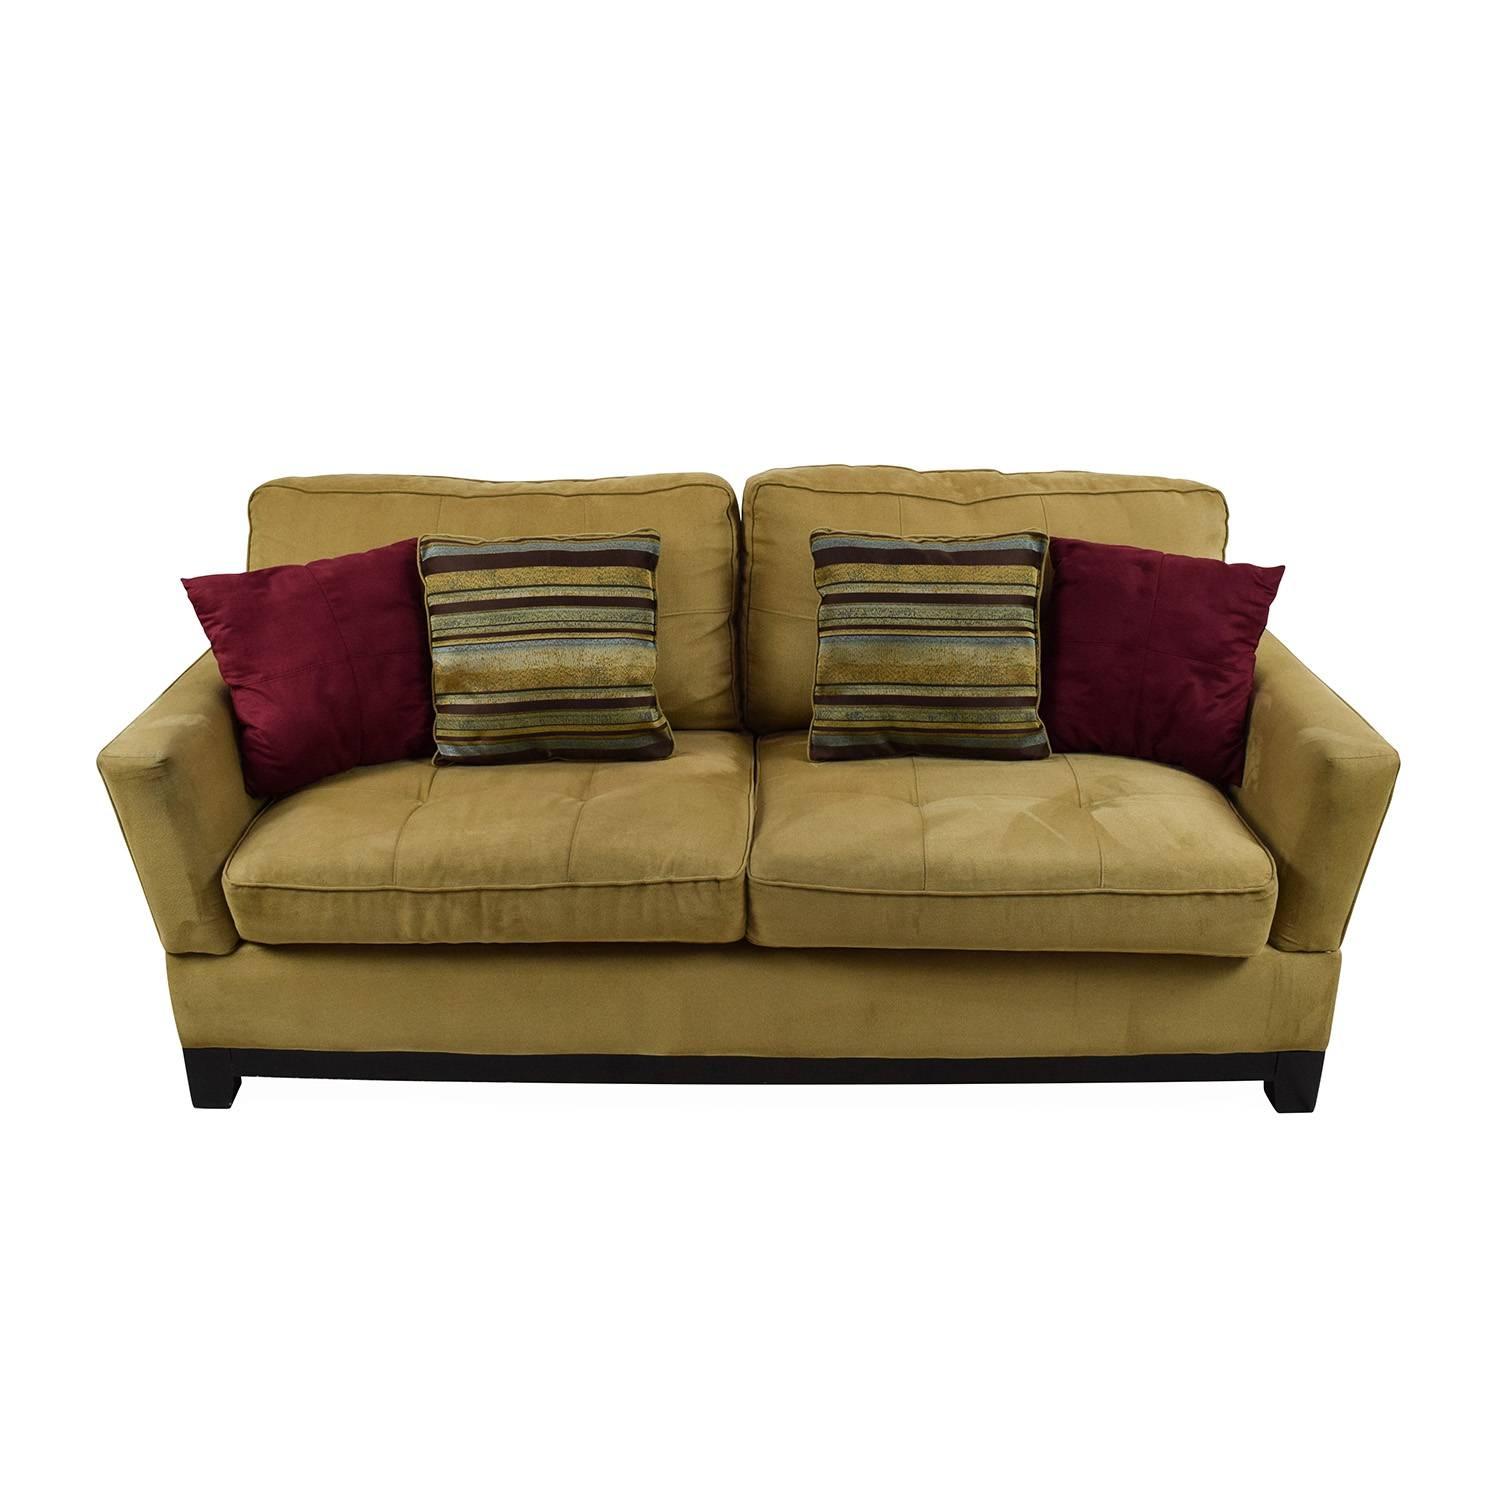 78% Off   Jennifer Convertibles Jennifer Convertibles Tan Sofa / Sofas Pertaining To Jennifer Sofas (Photo 3 of 30)